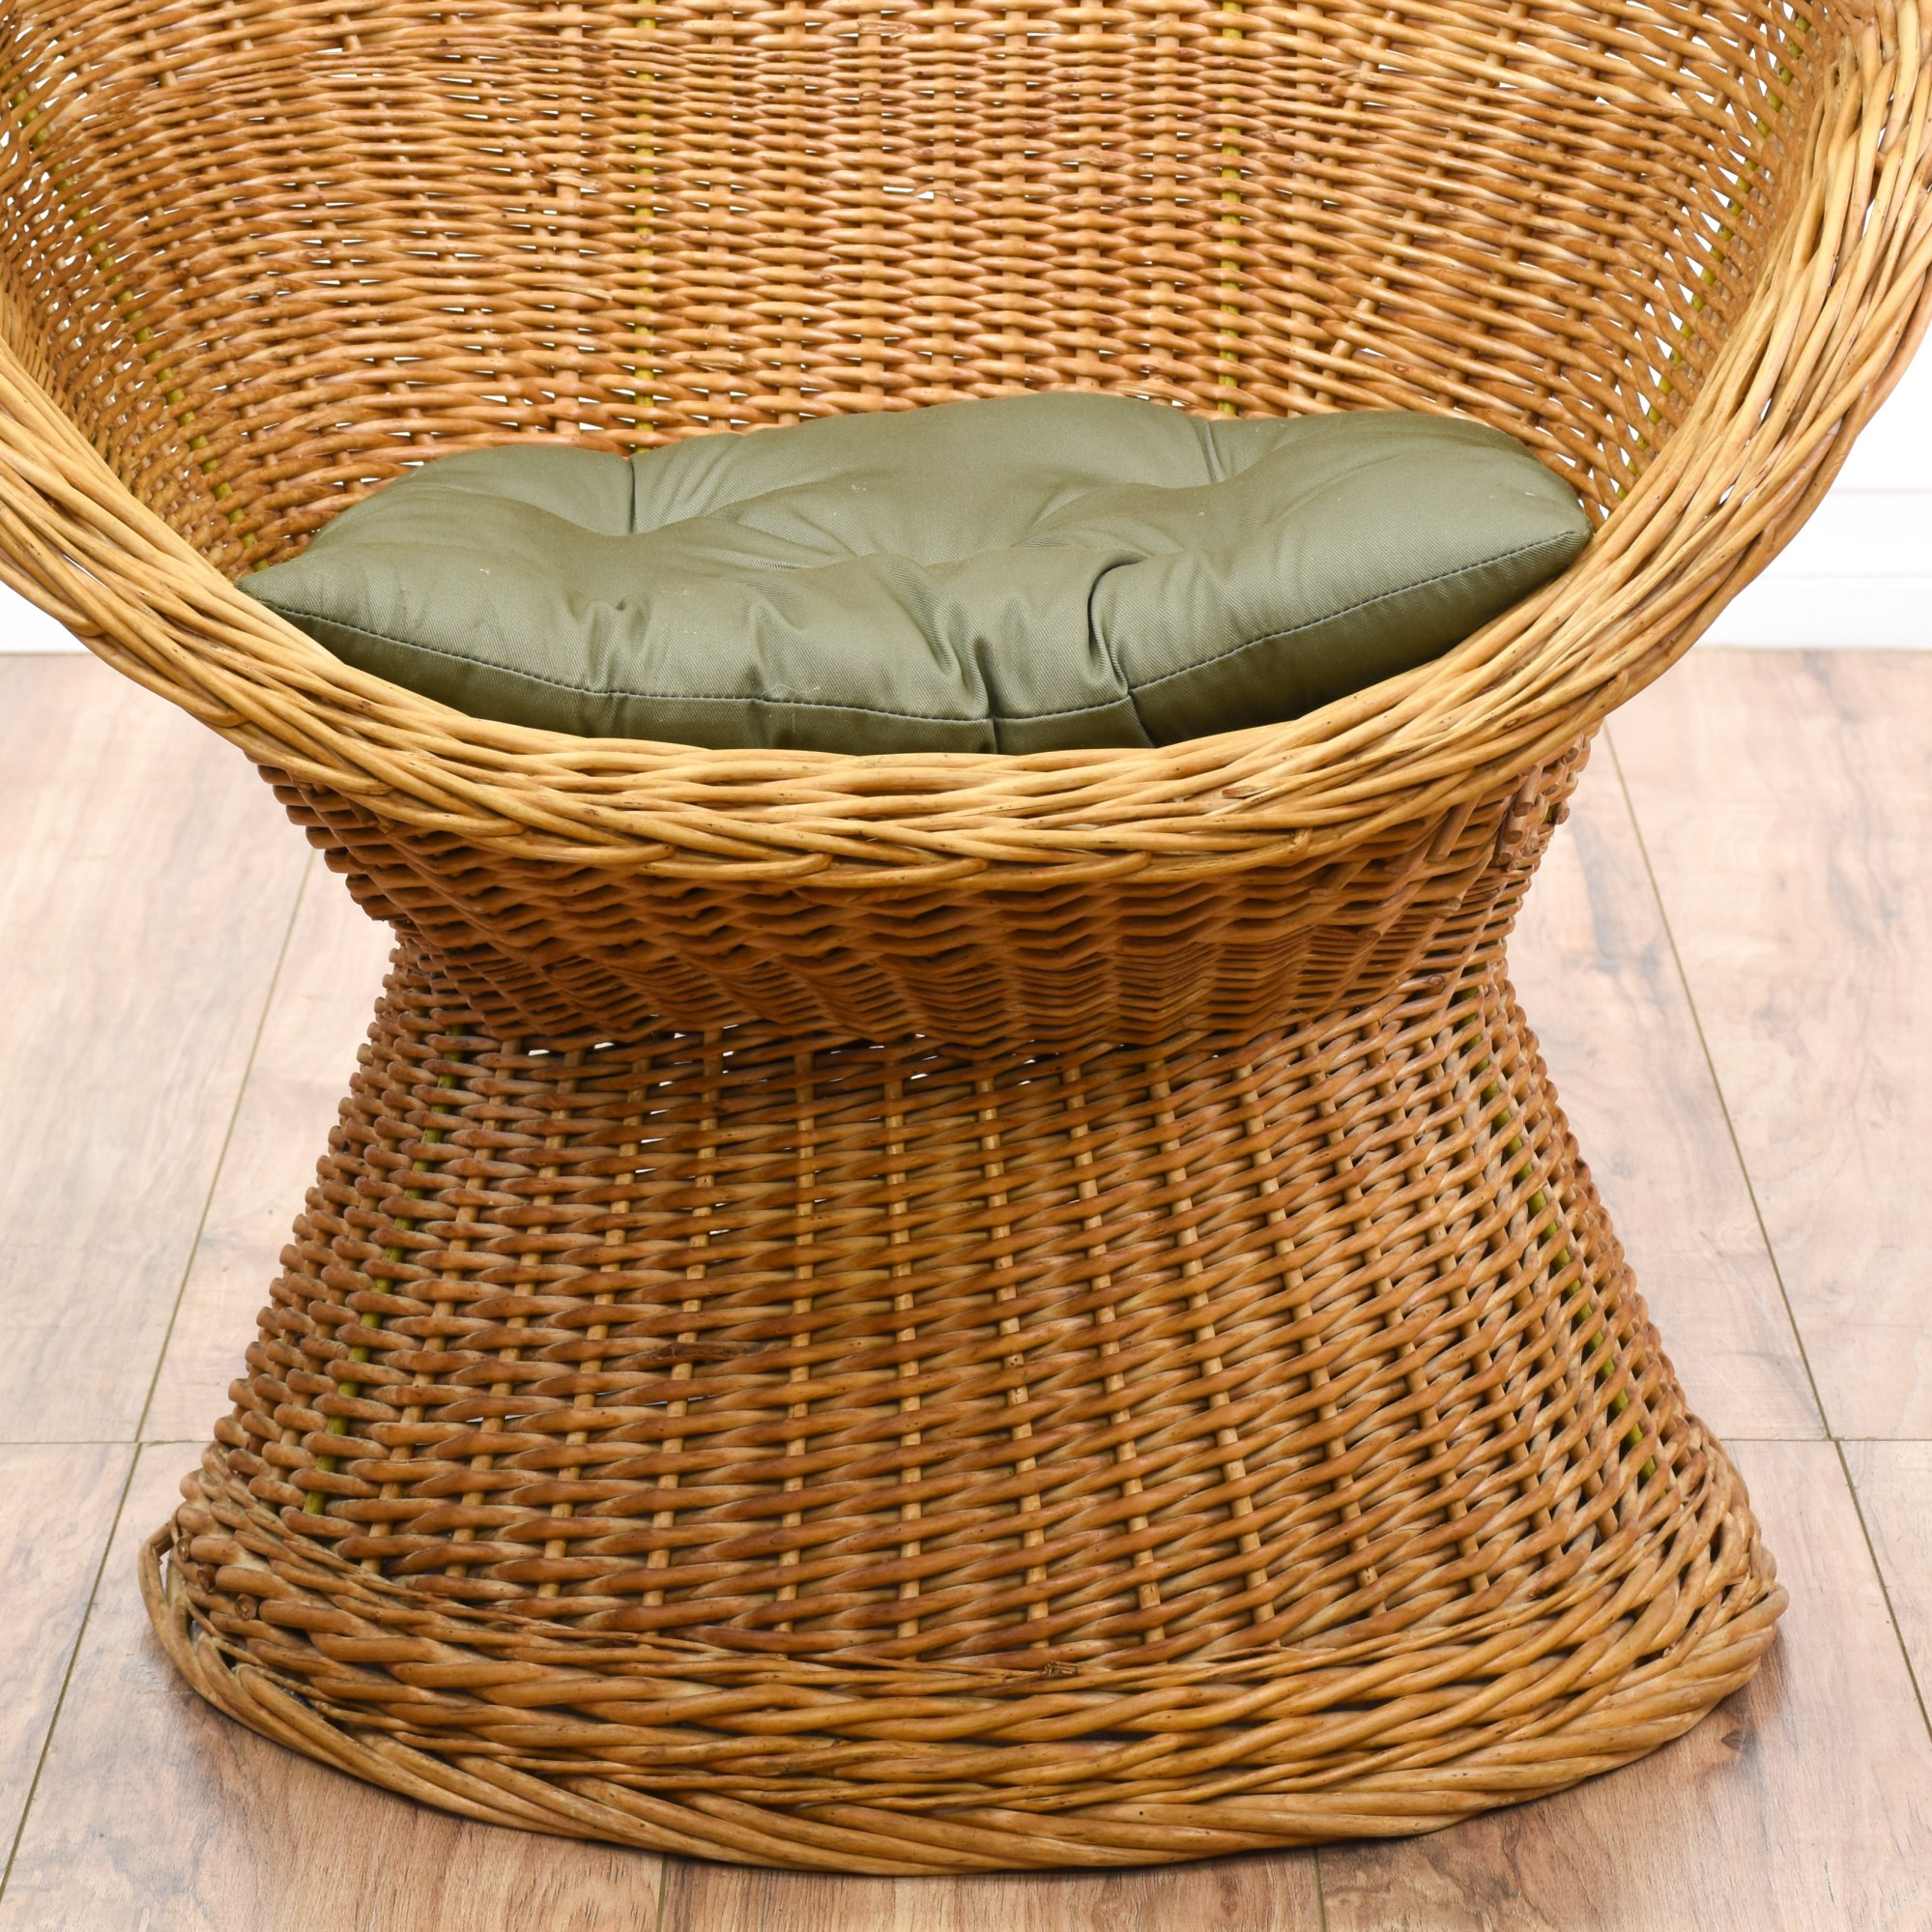 Wicker Egg Chairs Curved Rattan Woven Egg Chair Loveseat Vintage Furniture